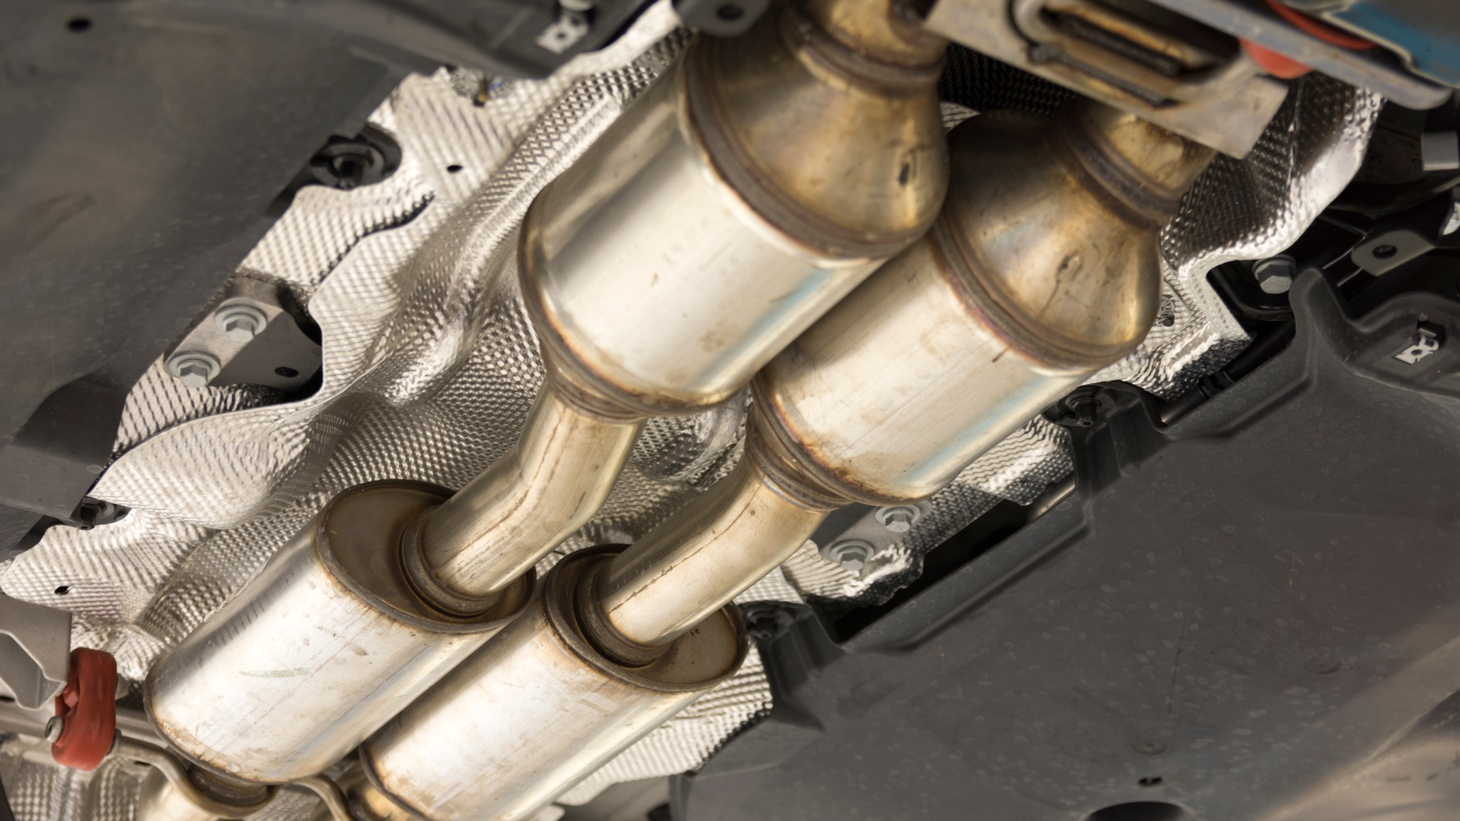 A catalytic converter reduces toxic emissions from a gas-powered car. The piece of equipment also has valuable metals, such as platinum, rhodium and palladium. Catalytic converter thefts in LA have jumped 400% since 2019, according to the Sheriff's Department.